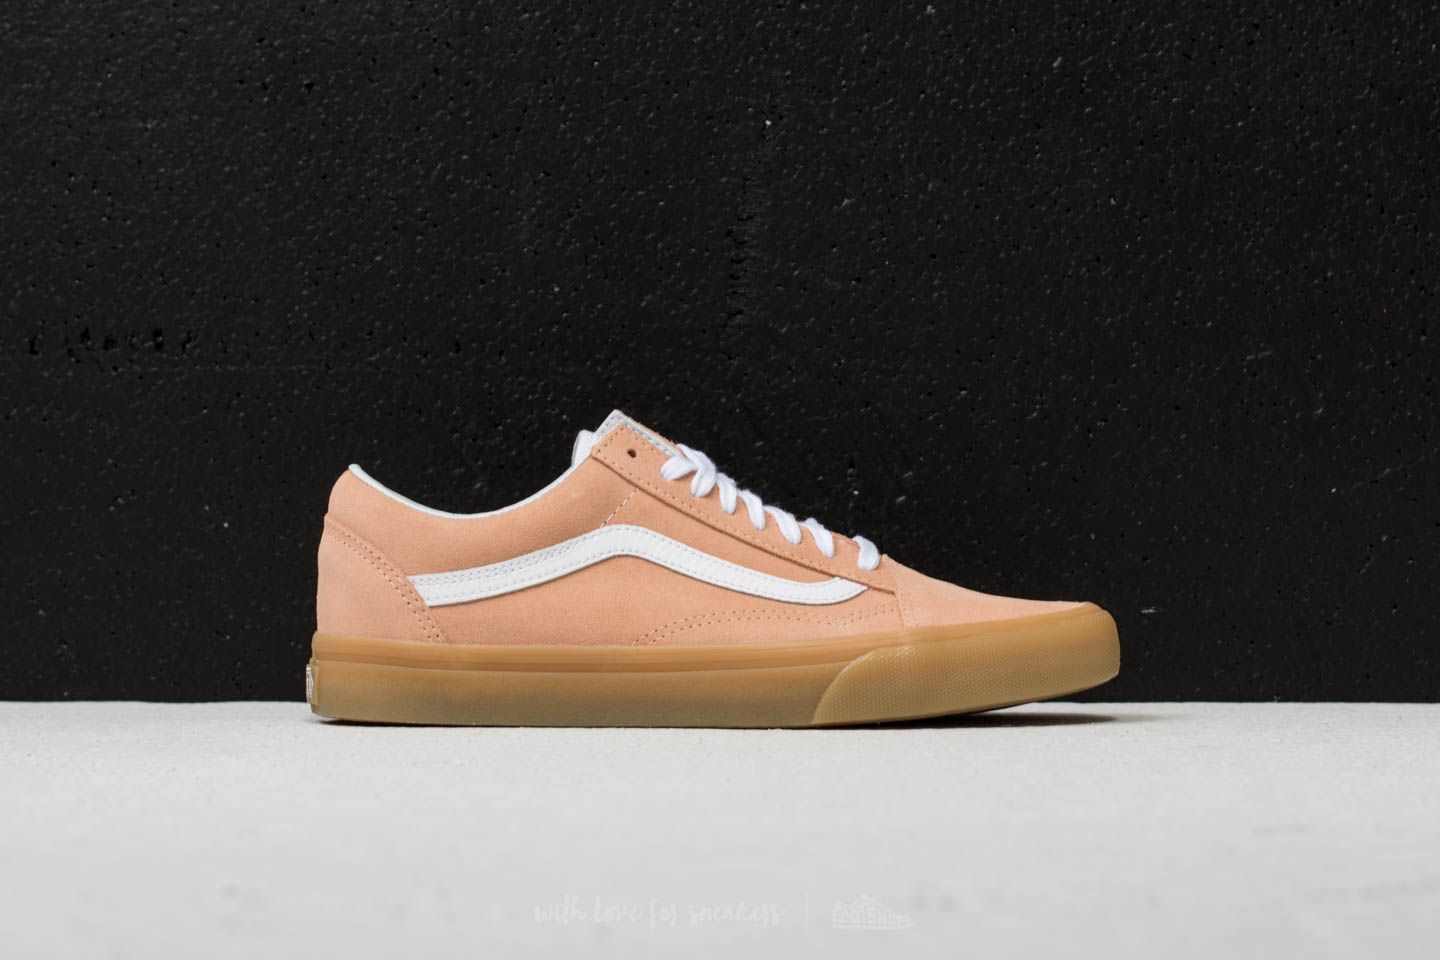 Vans Old Skool Pastel Pink Gum Shoes